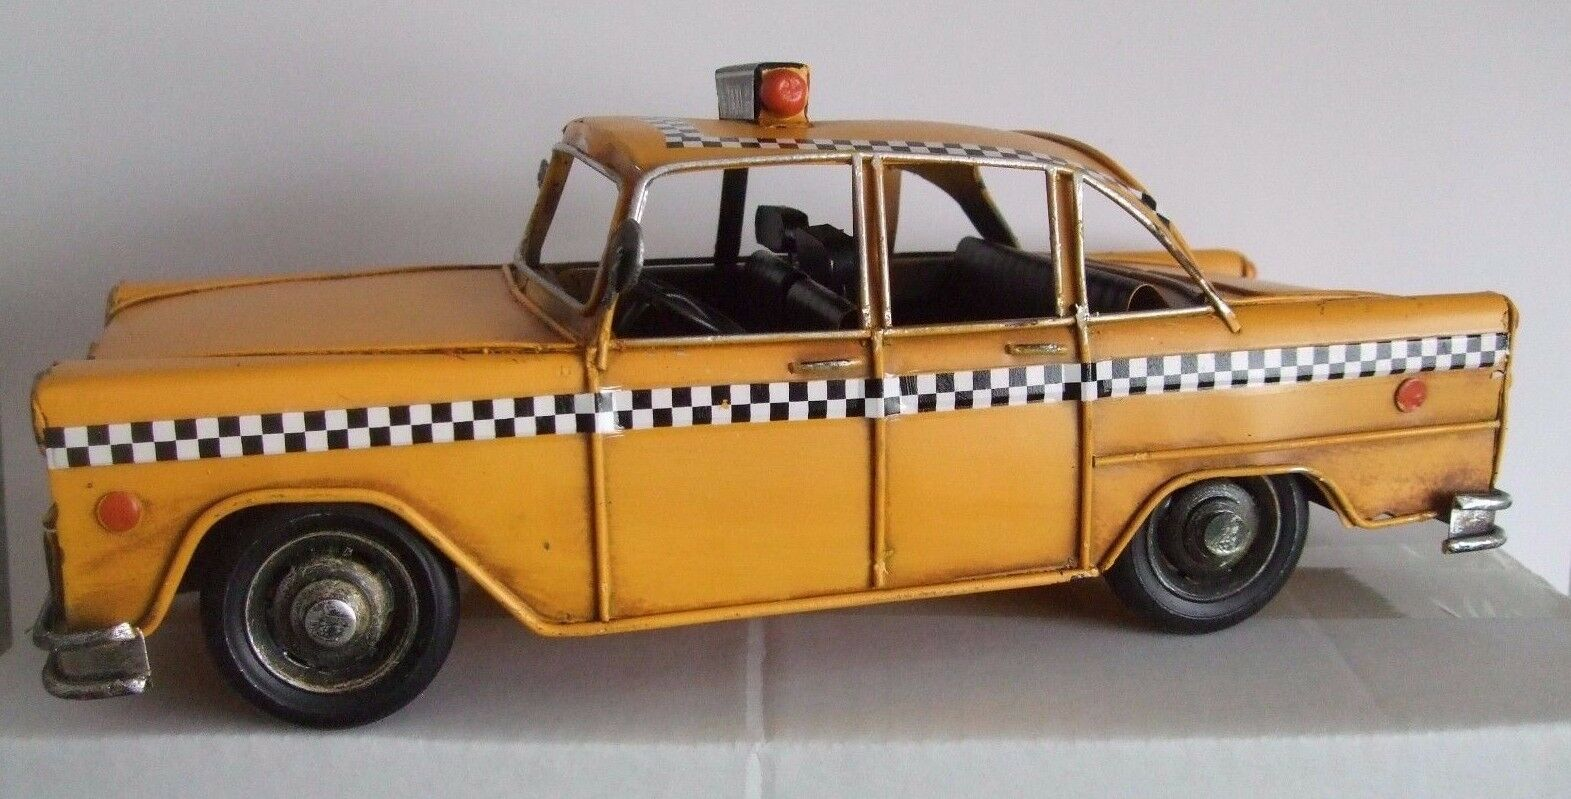 Tin Plate Model of a Yellow Taxi Cab  Hand Painted  Yellow Ornament  Gift